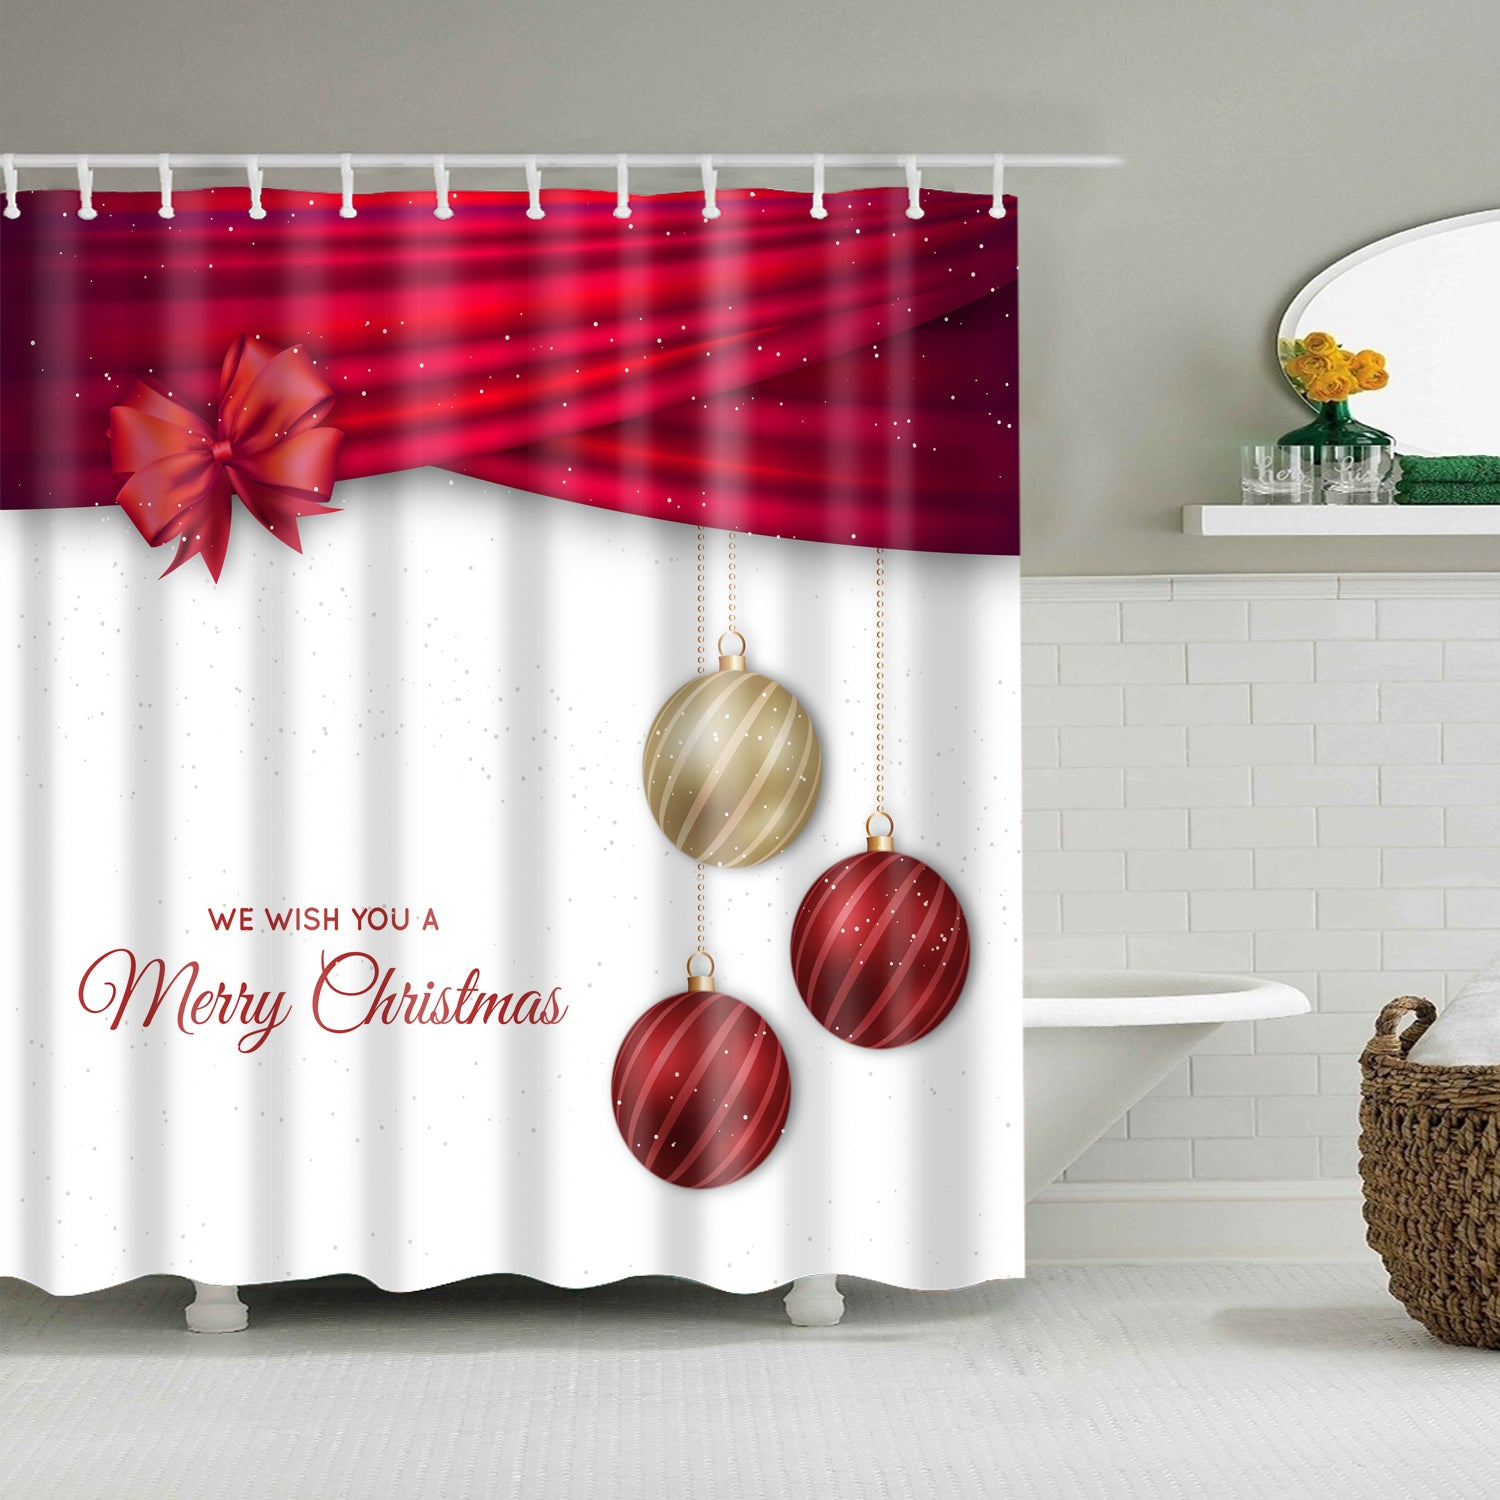 Christmas Drapery Ornaments Greeting Shower Curtain